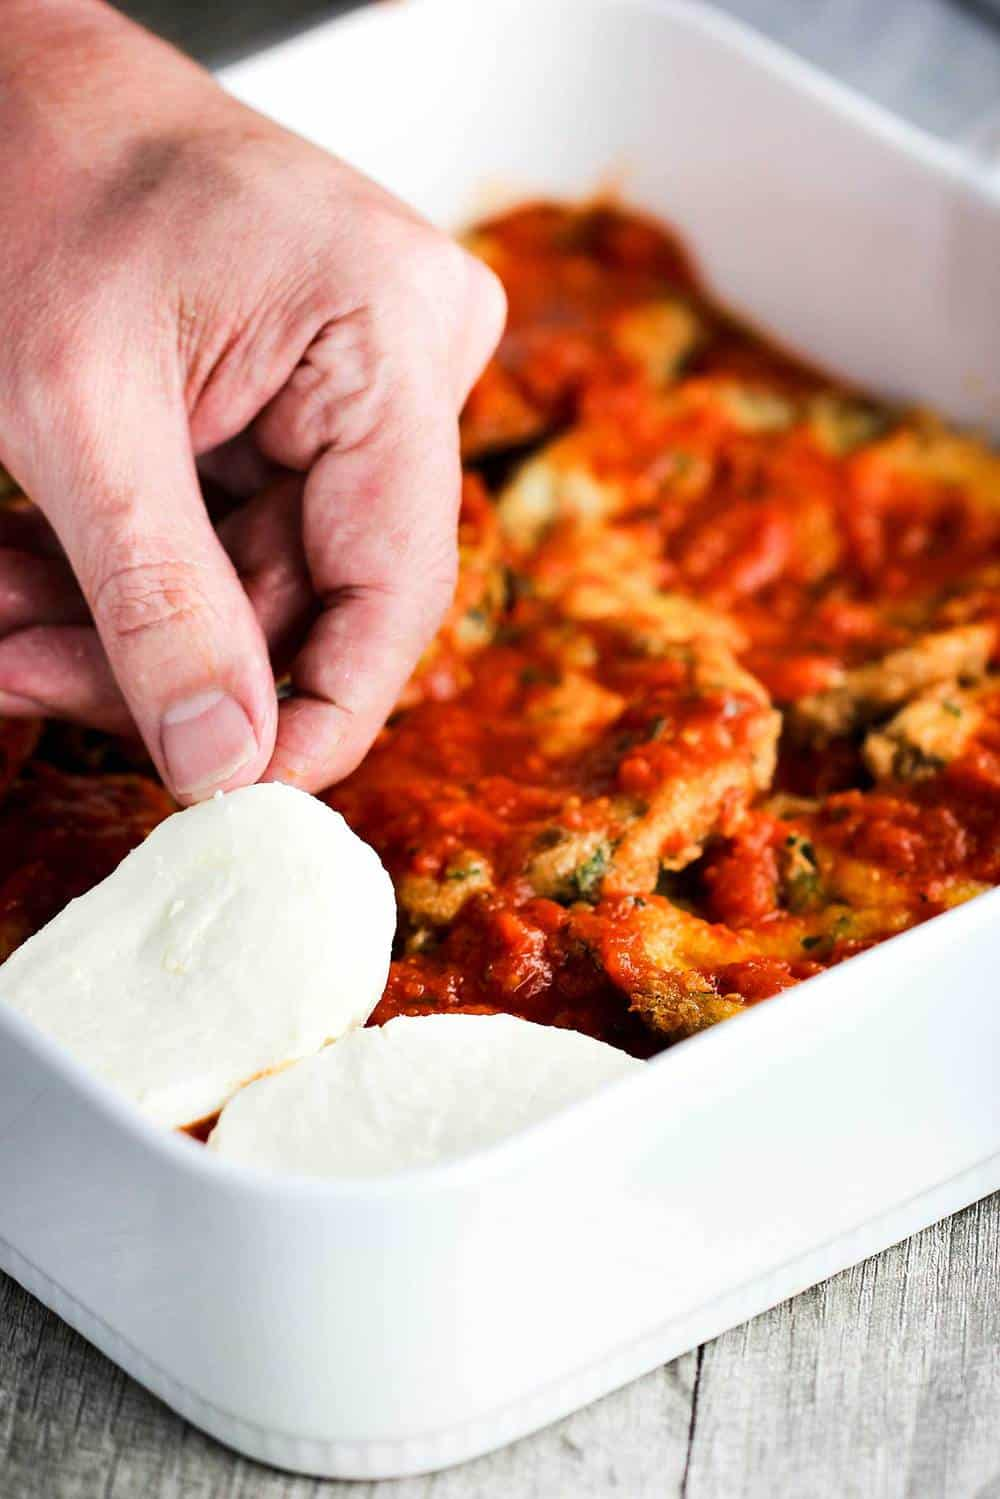 A baking dish of eggplant parmesan with layers of fresh mozzarella being layered in.